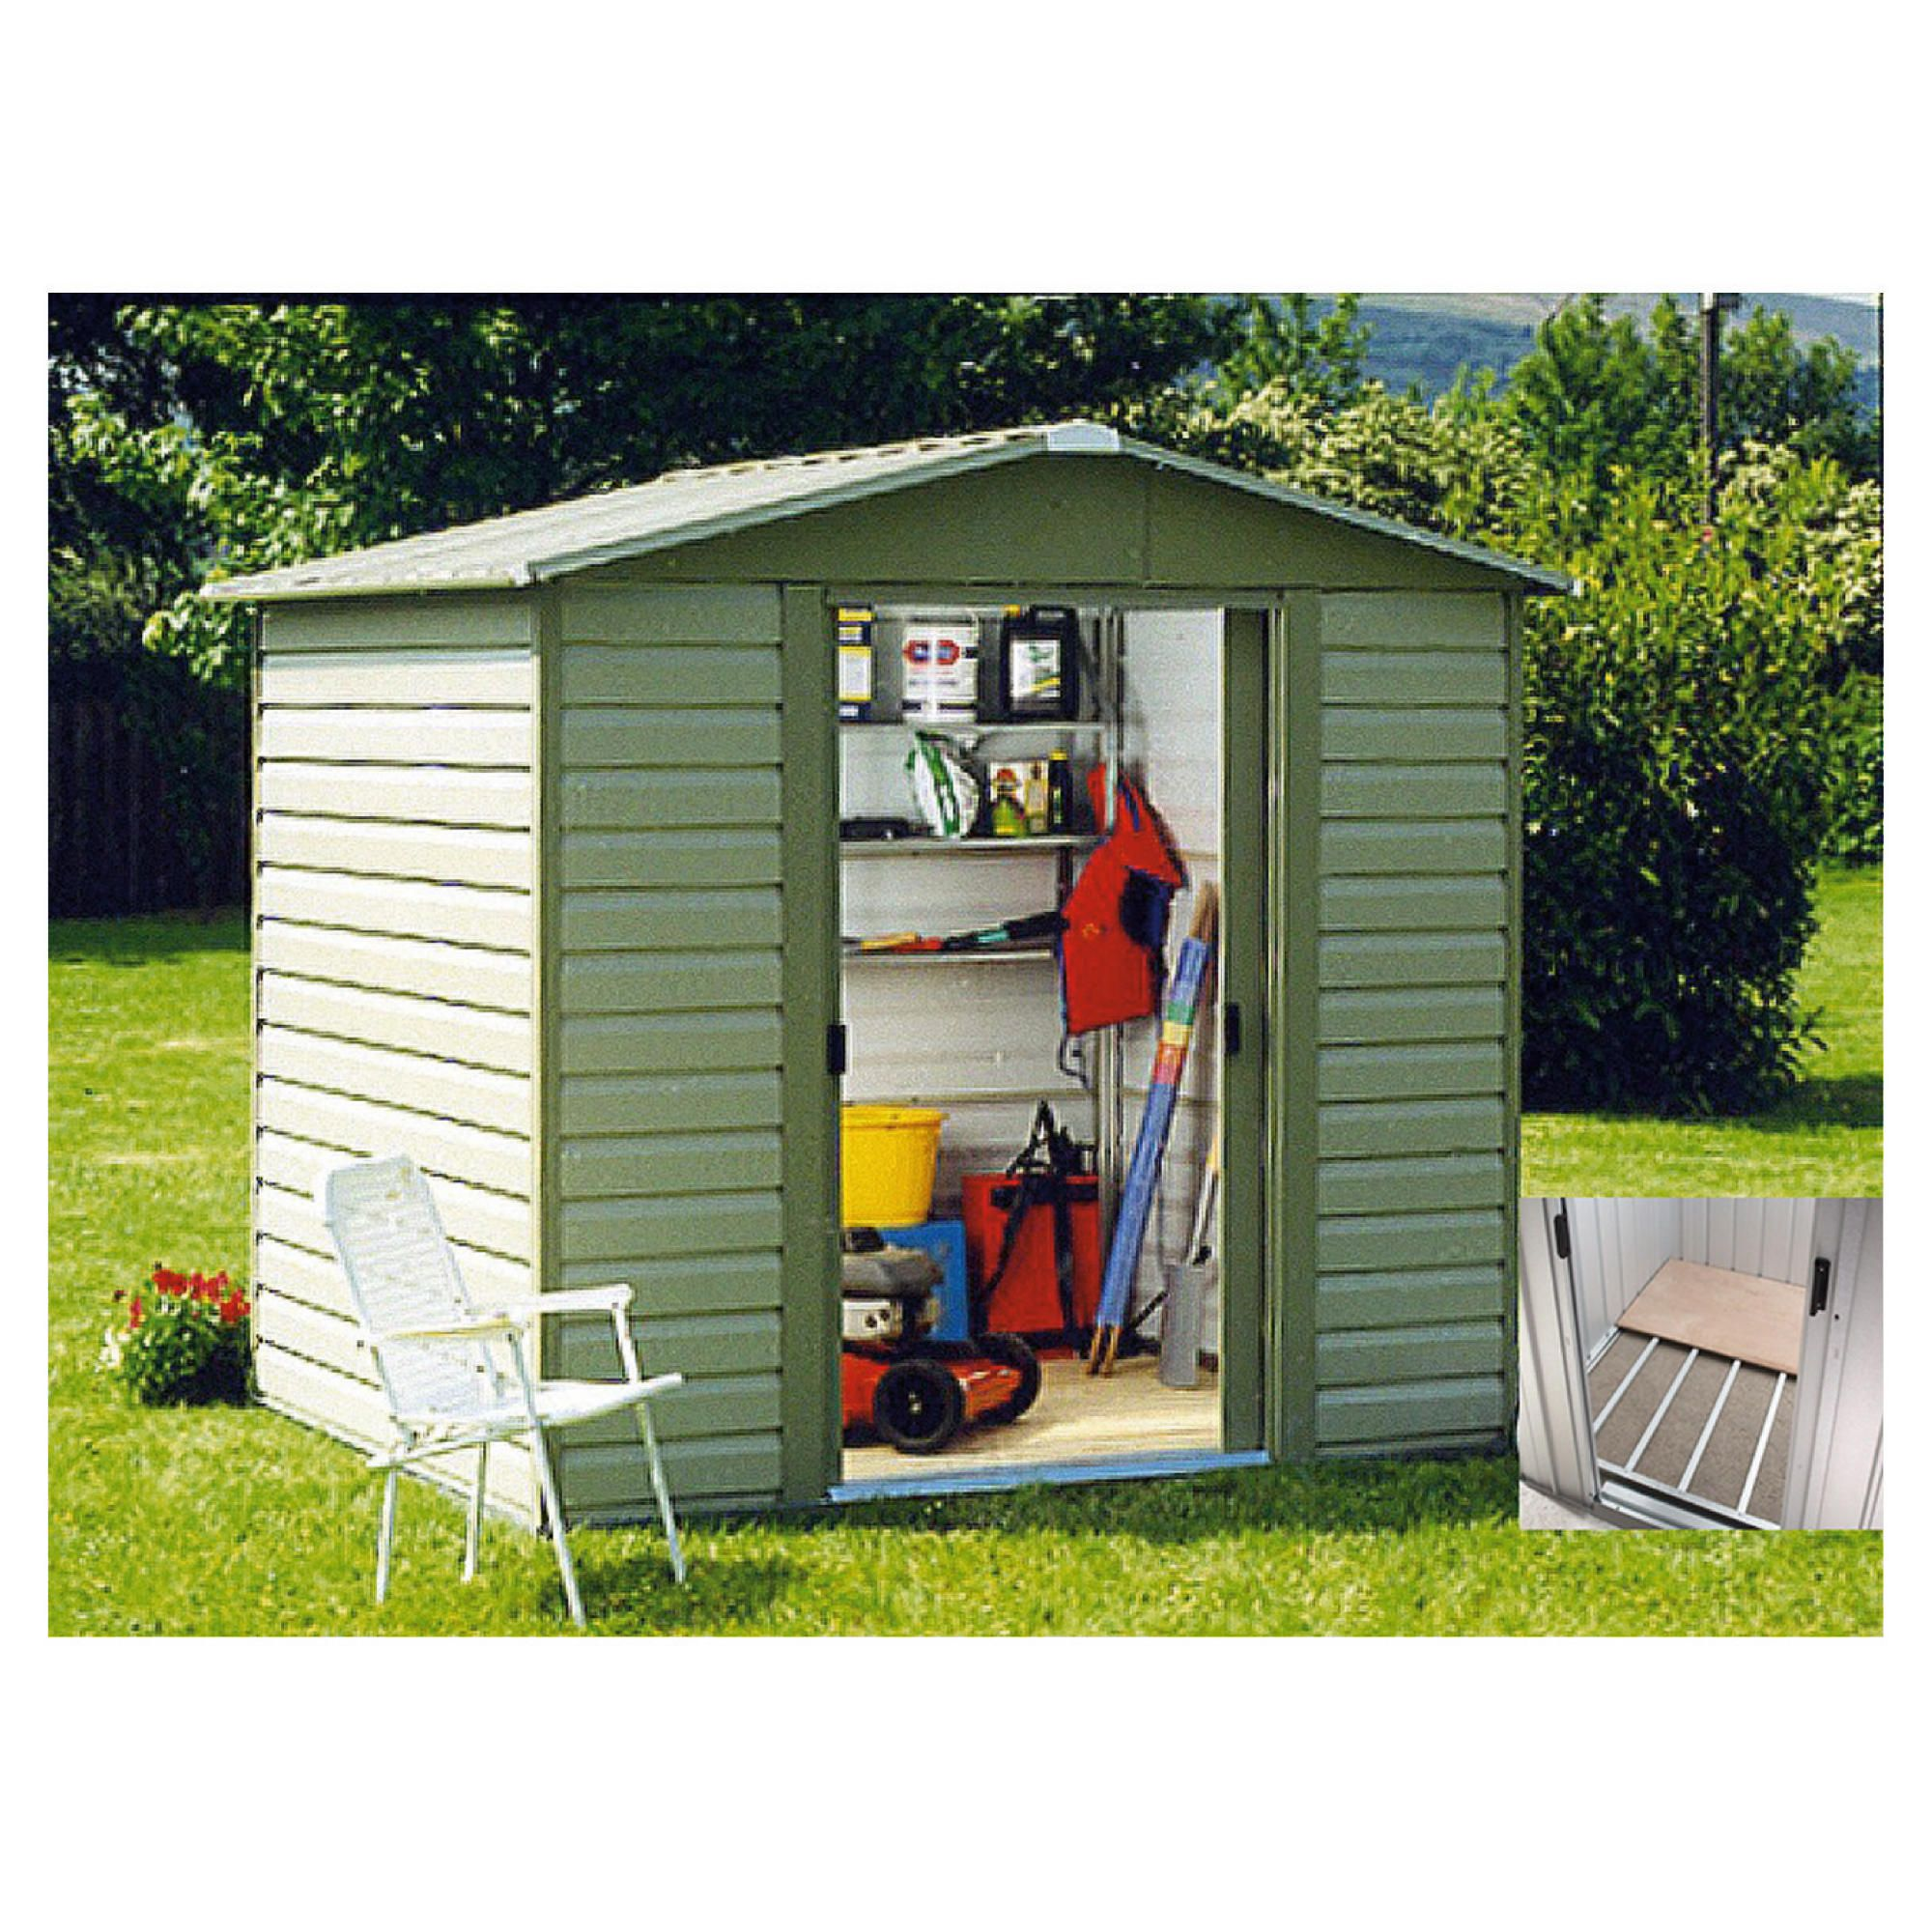 Shed 8x6 double door nma for Garden shed 8x6